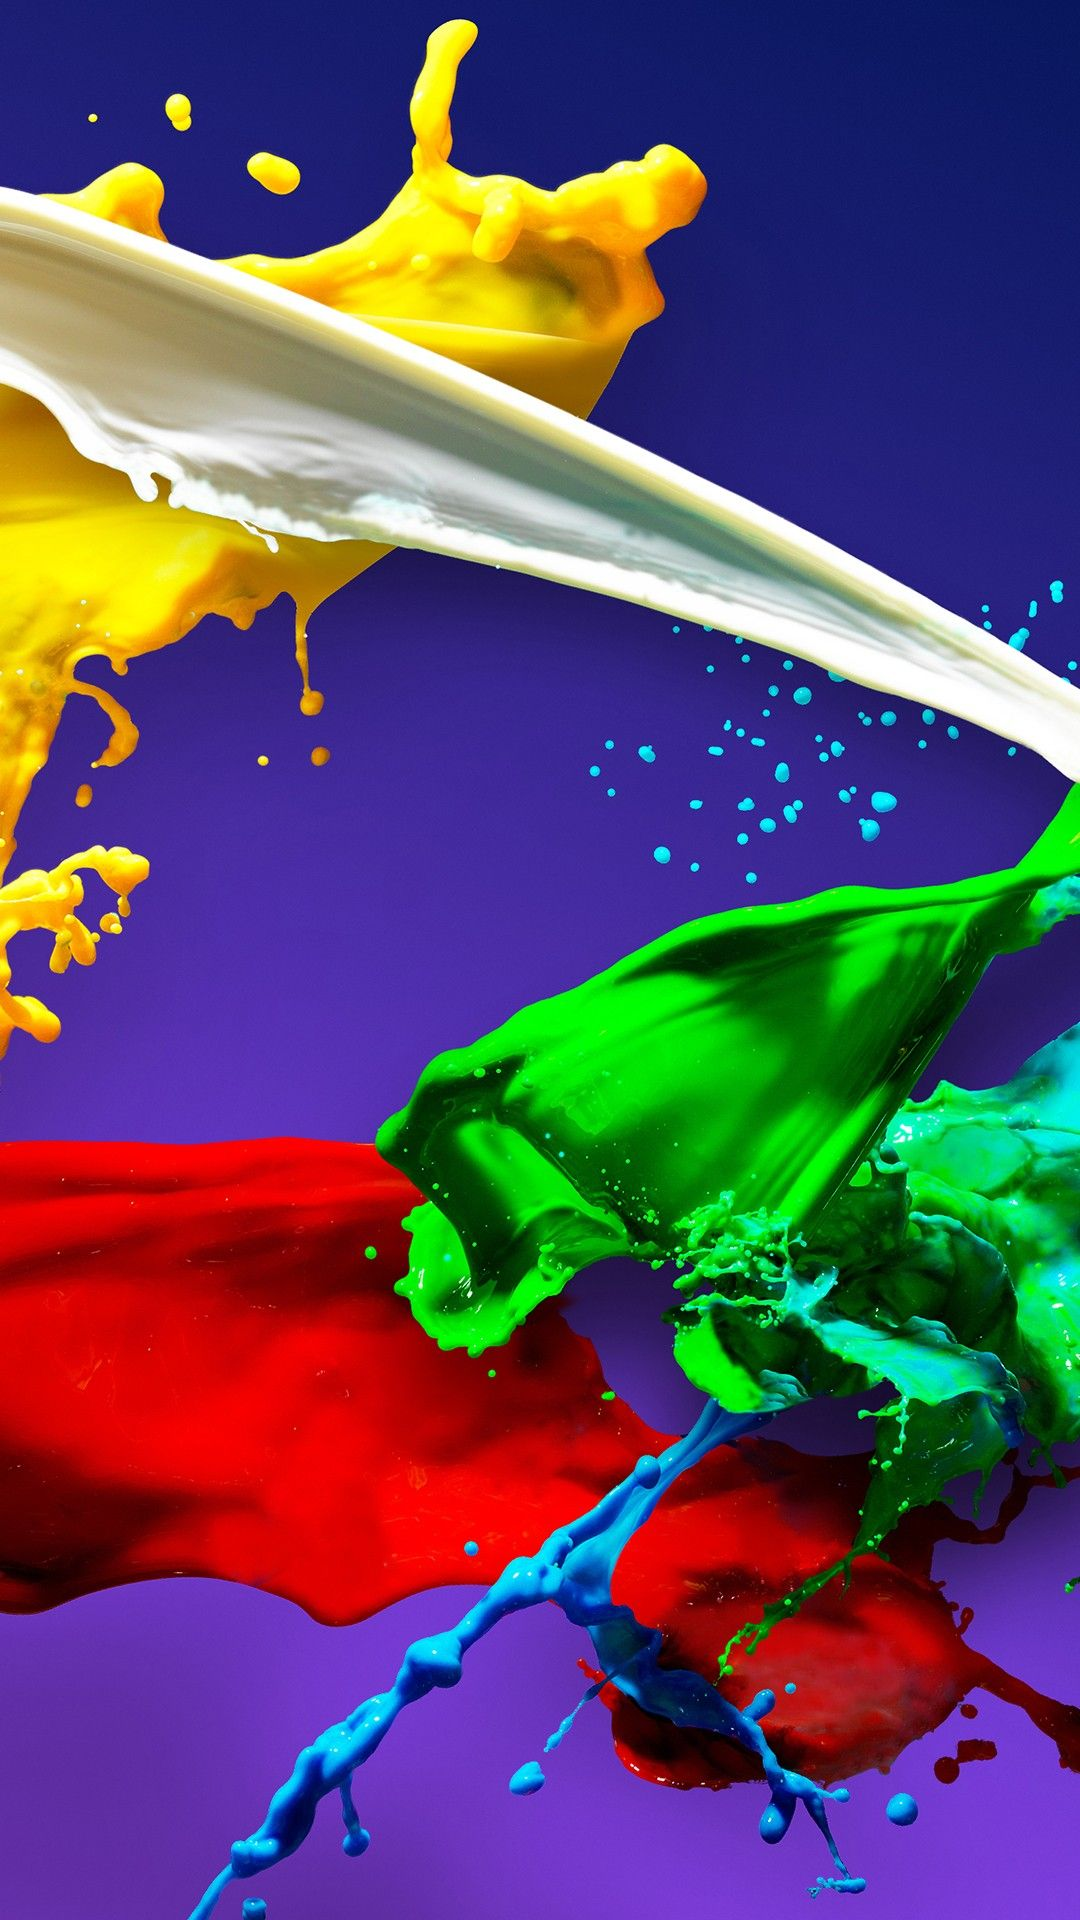 Misc Colors Splash Wallpapers Hd 4k Background For Android Colorful Wallpaper Iphone Wallpaper Blur Mobile Wallpaper